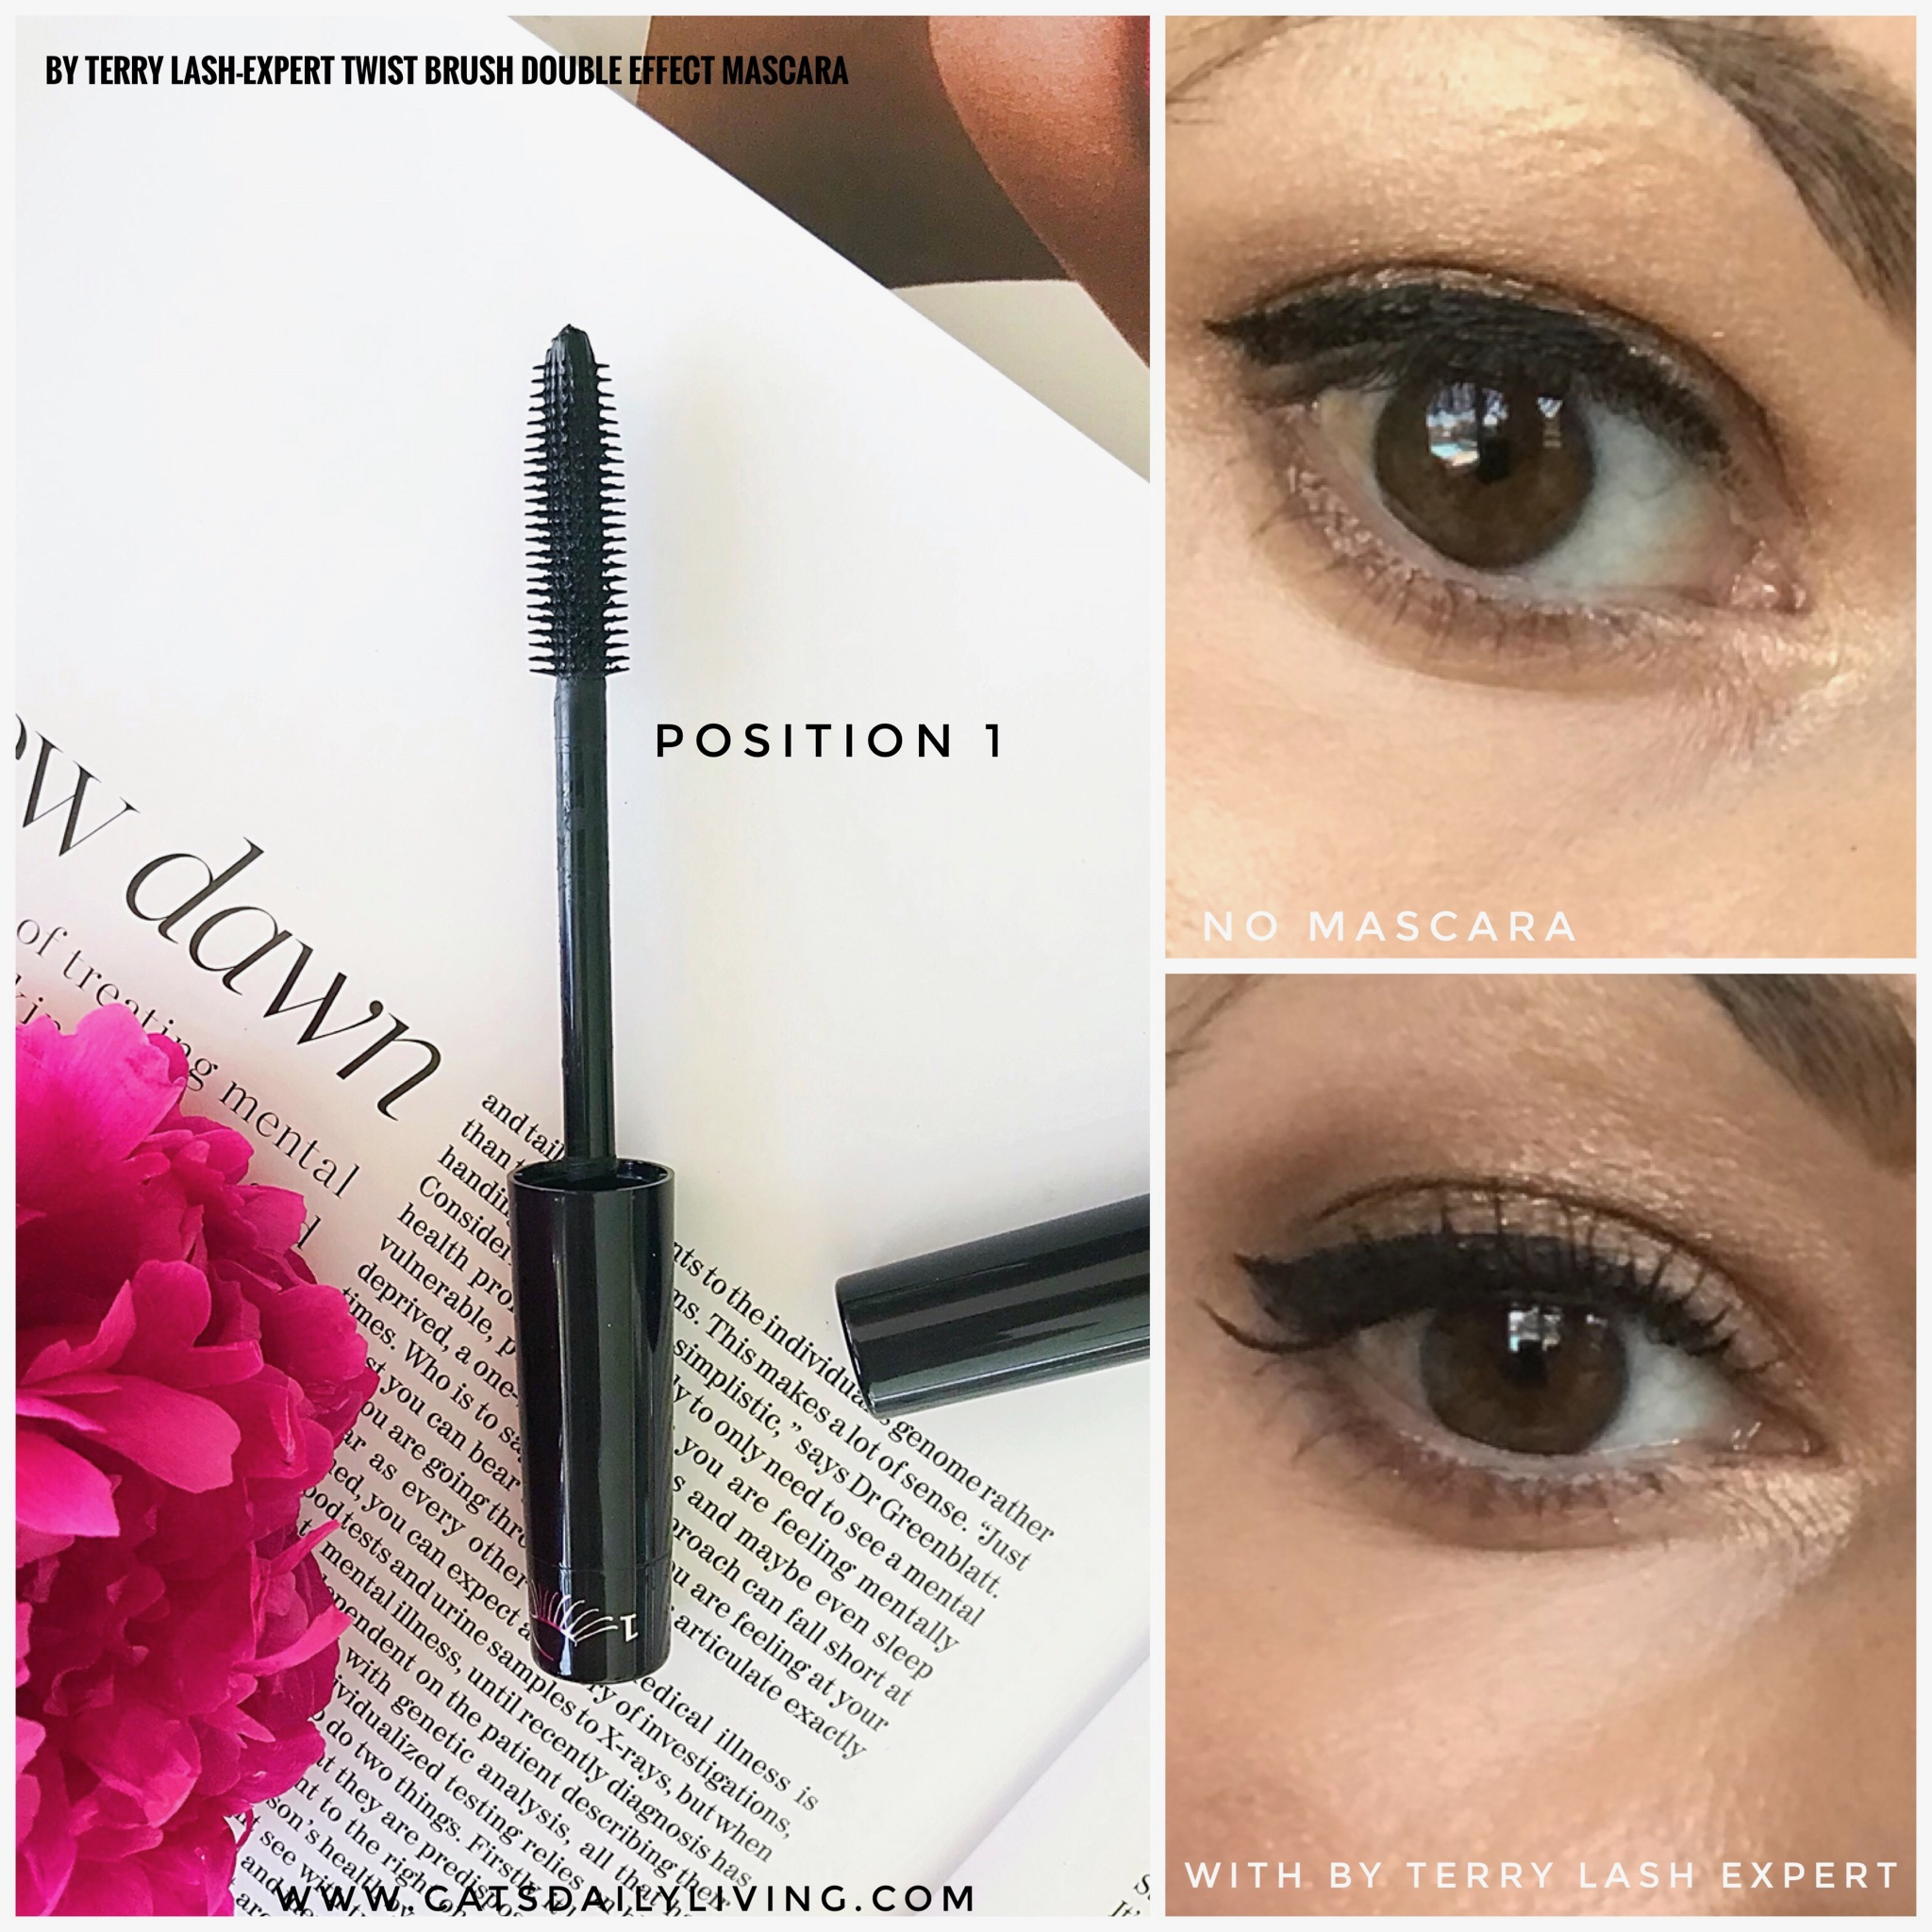 By Terry Lash Expert Twist Brush Double Effect Mascara Cats Daily